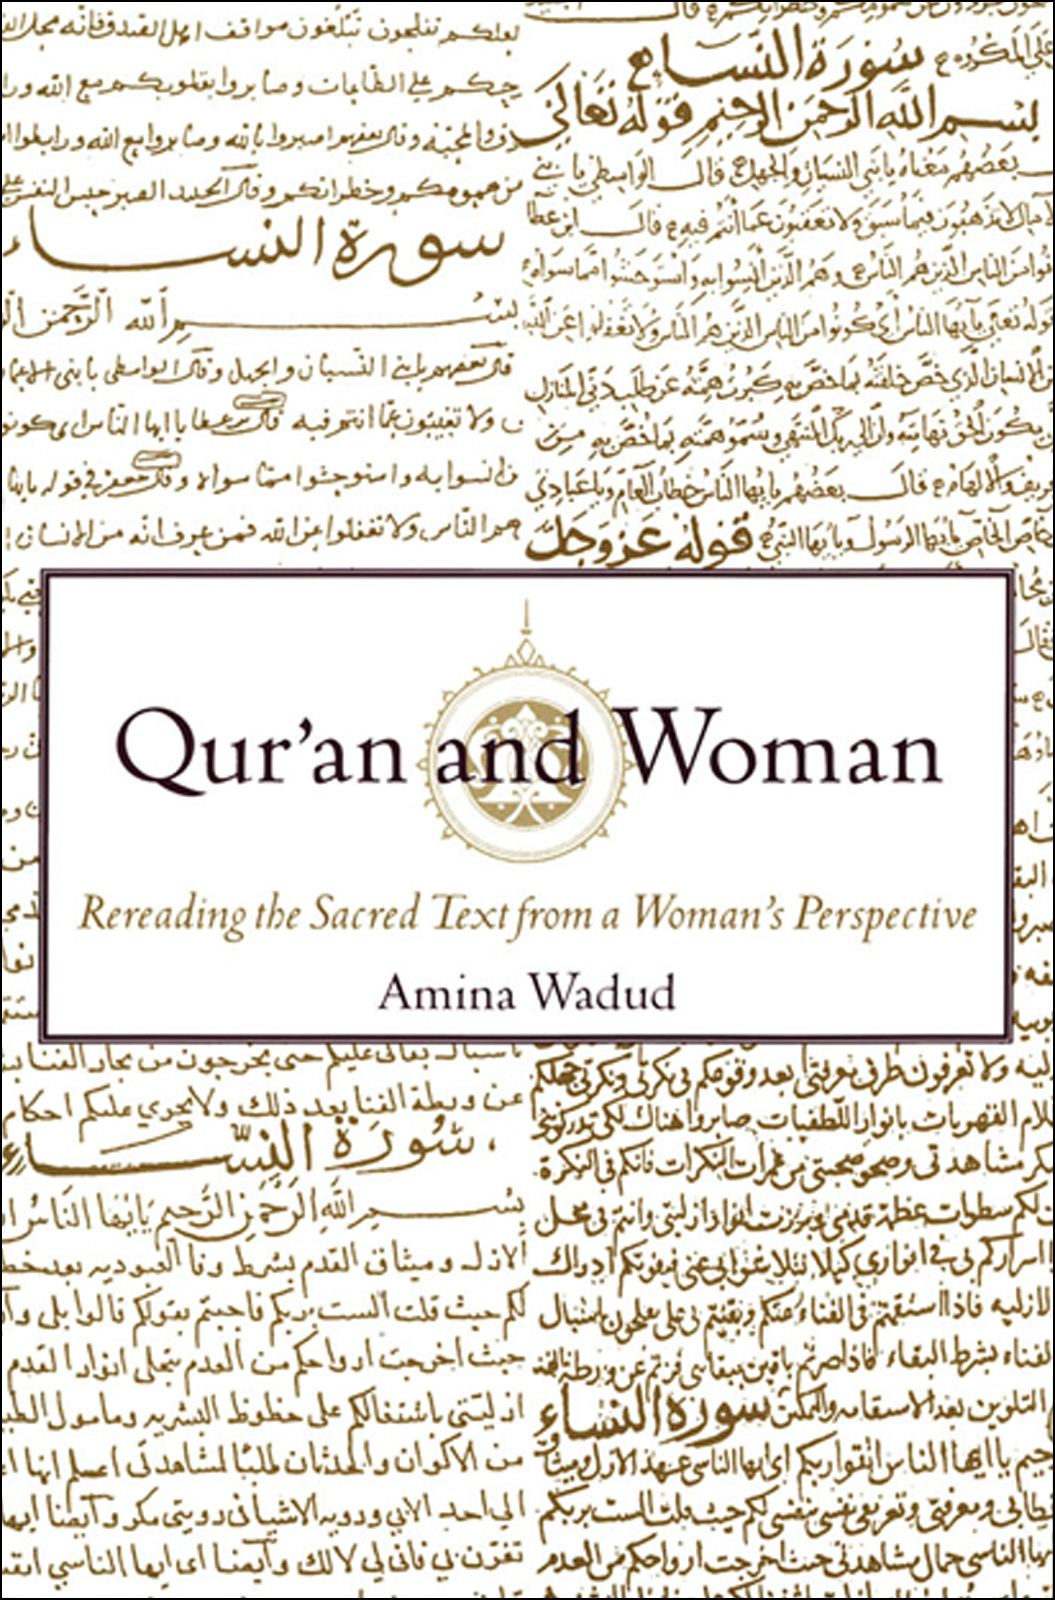 Qur'an and Woman:Rereading the Sacred Text from a Woman's Perspective